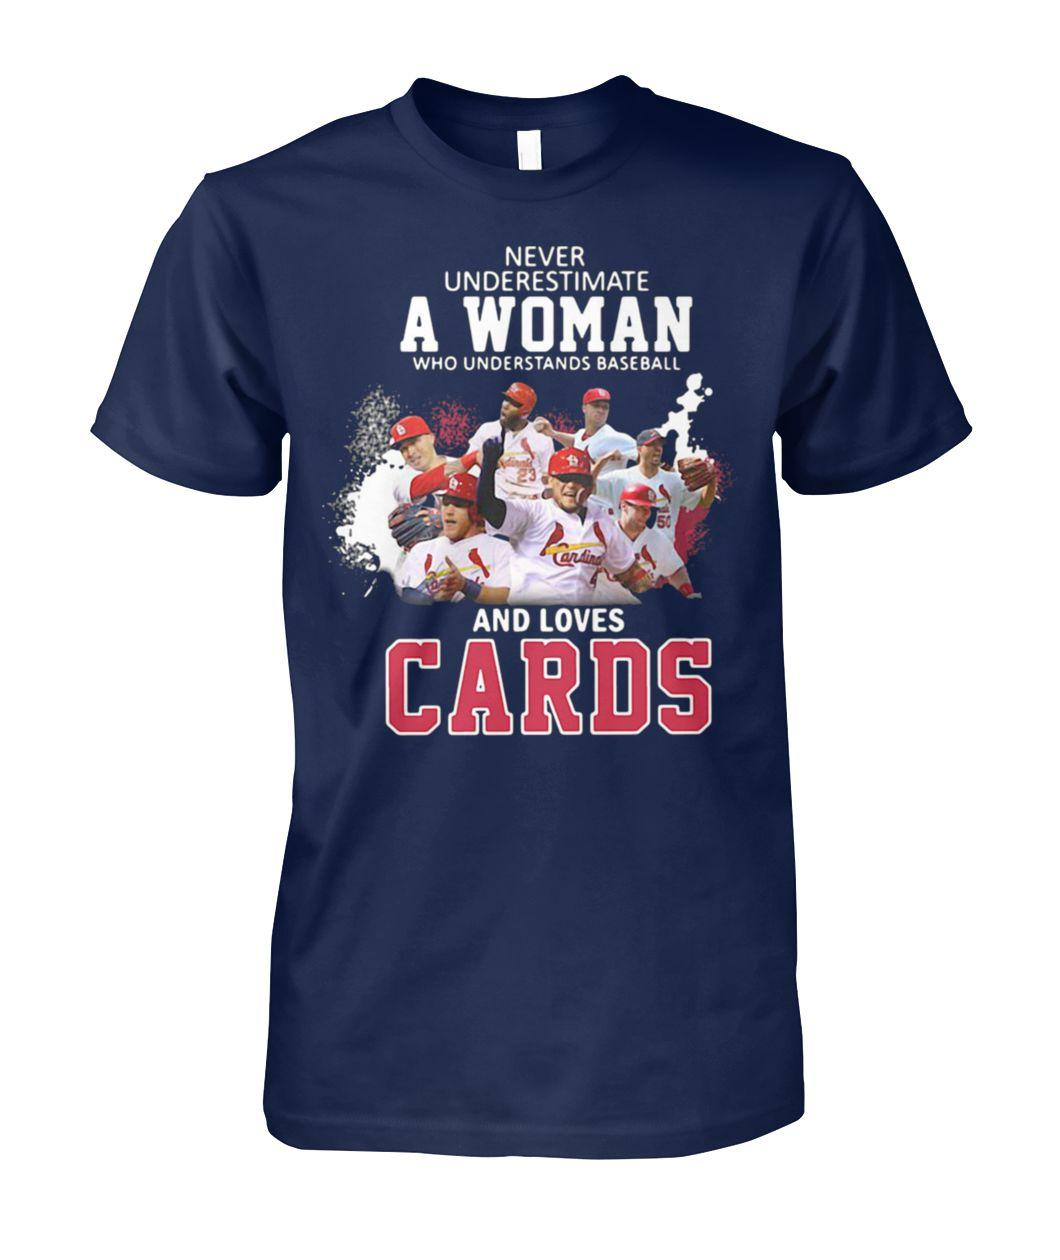 Never underestimate a woman who understands baseball and loves st louis cardinals guy shirt